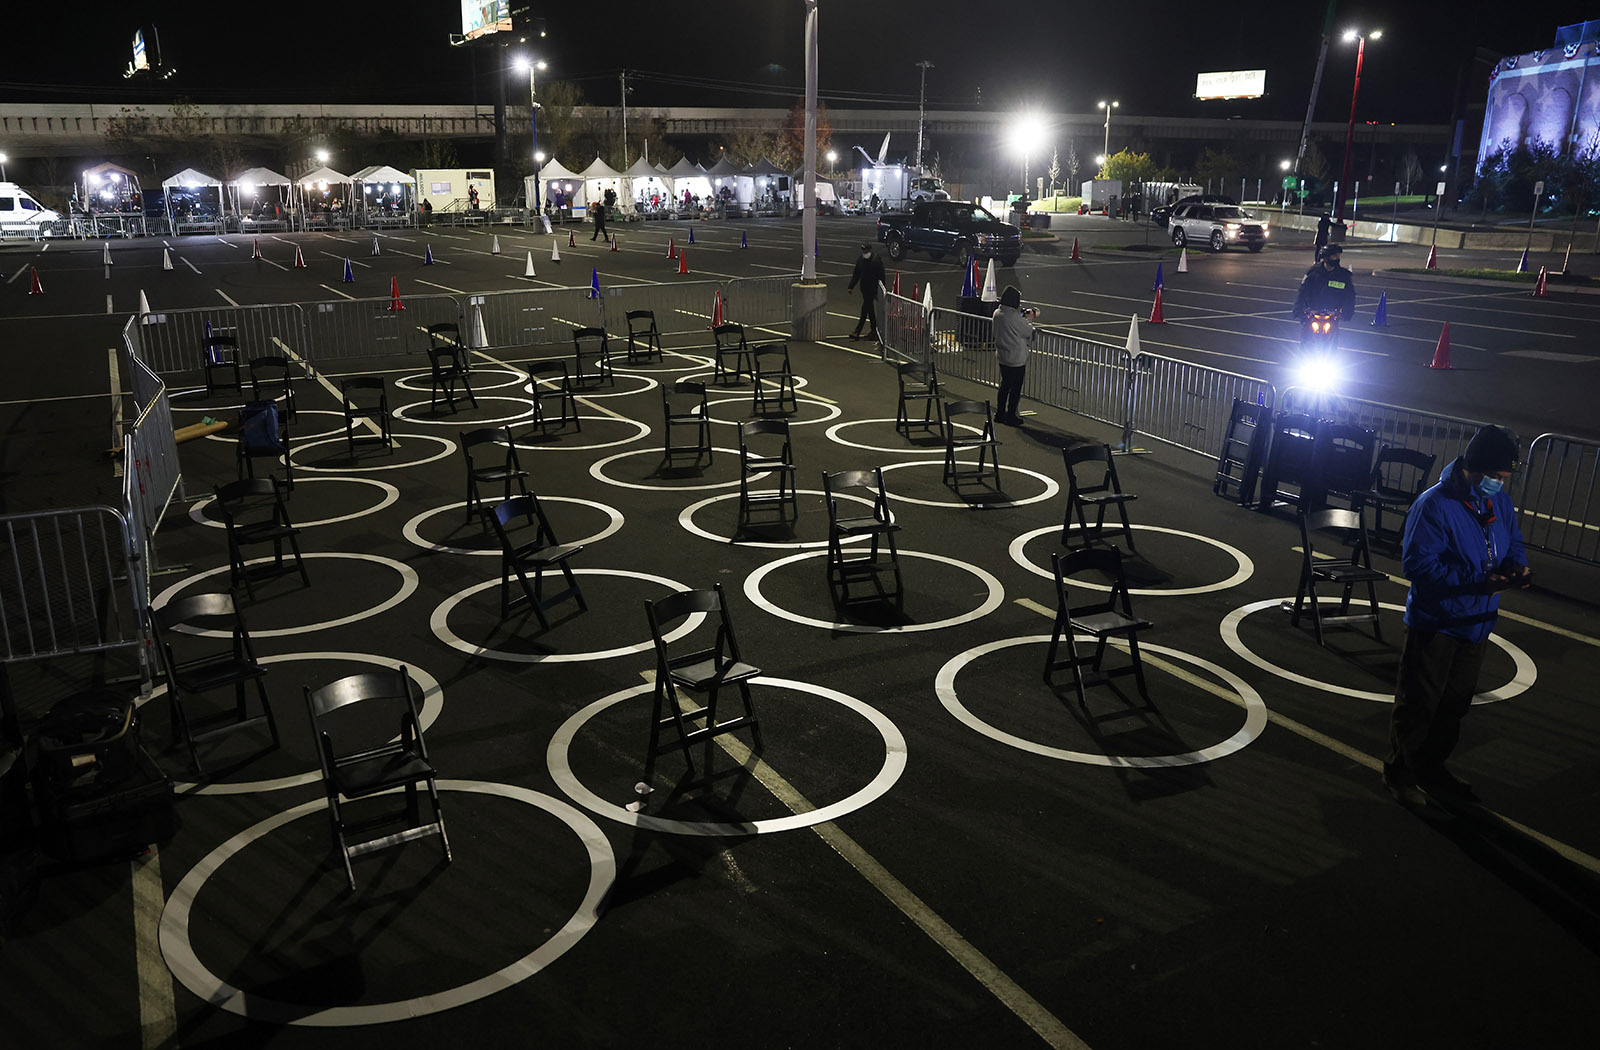 Chairs sit ready for reporters inside circles marked for social distancing as a Covid-19 precaution in the press area at a drive-in election night event for Democratic presidential nominee Joe Biden at the Chase Center.